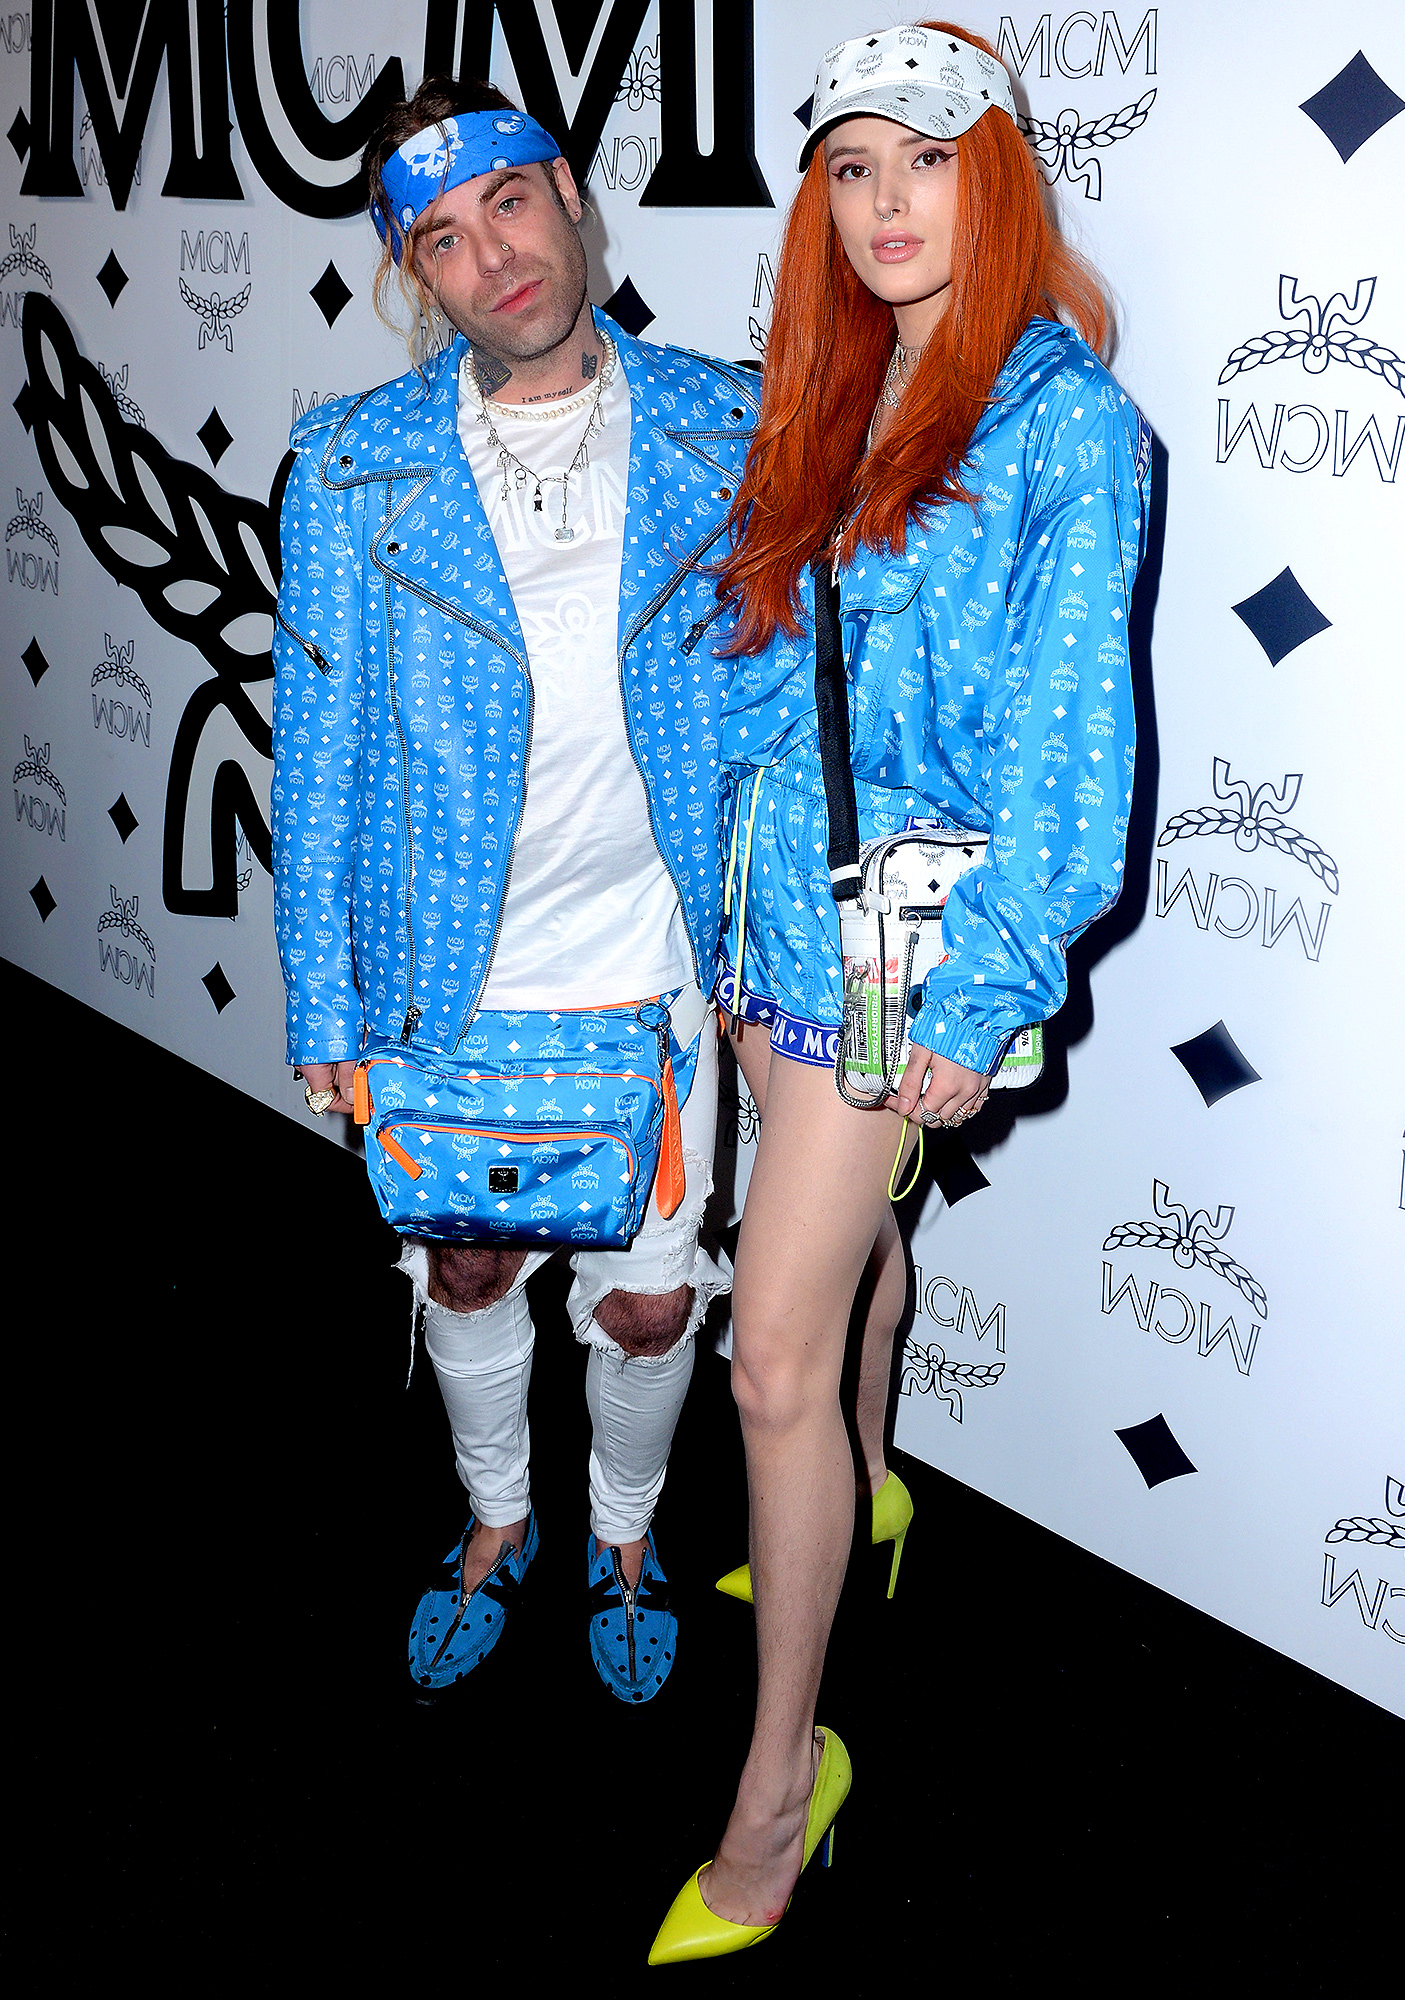 Mod Sun and Bella Thorne